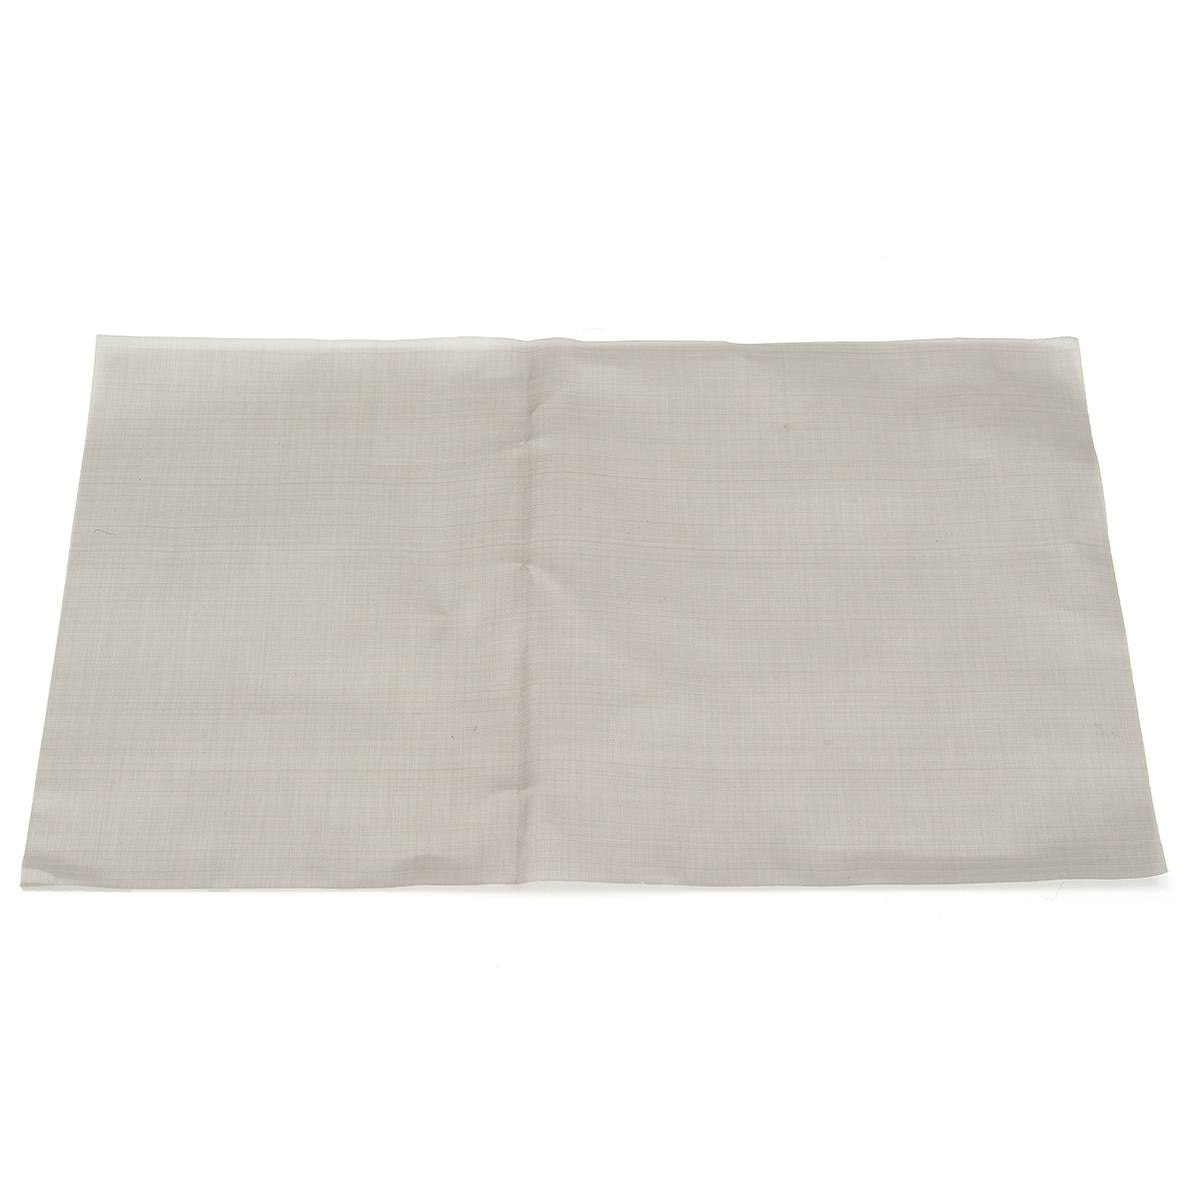 1/2 Pcs 200 Mesh Woven Wire Mesh Filtration Stainless Steel Cloth Screen Wire Filter Sheet 30x20cm